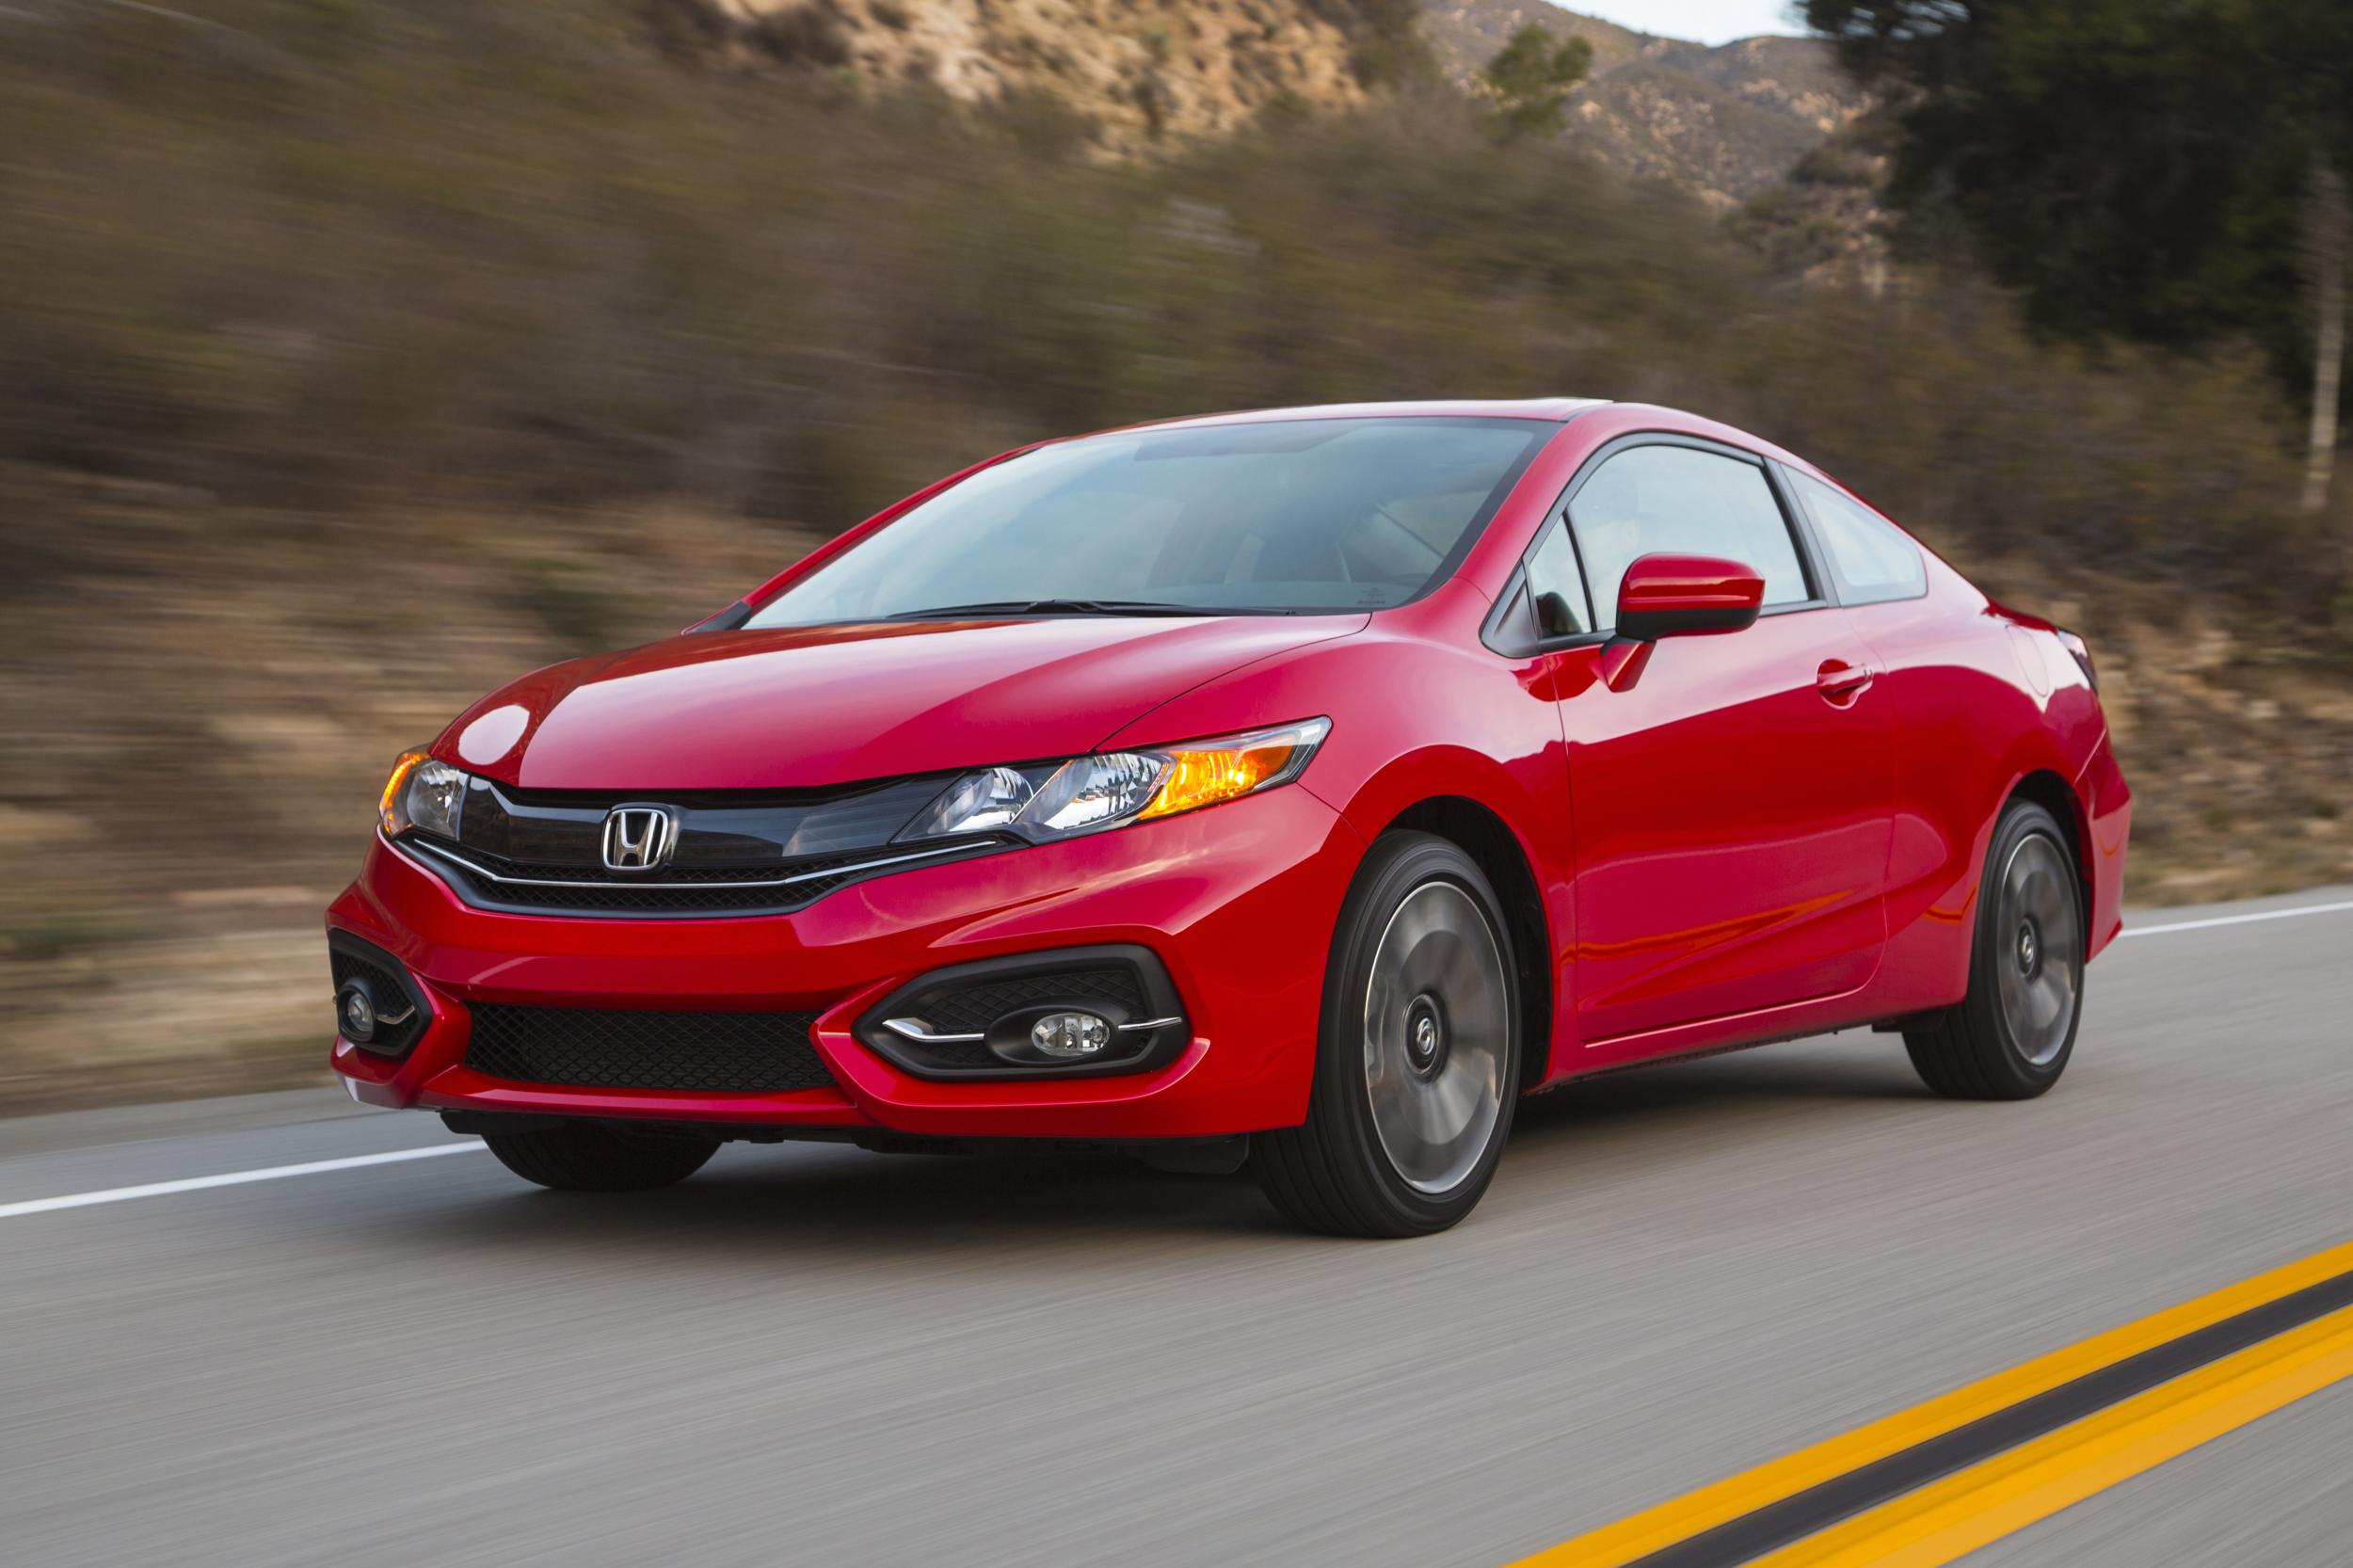 2015 Honda Civic Coupe And Sedan Pricing Announced